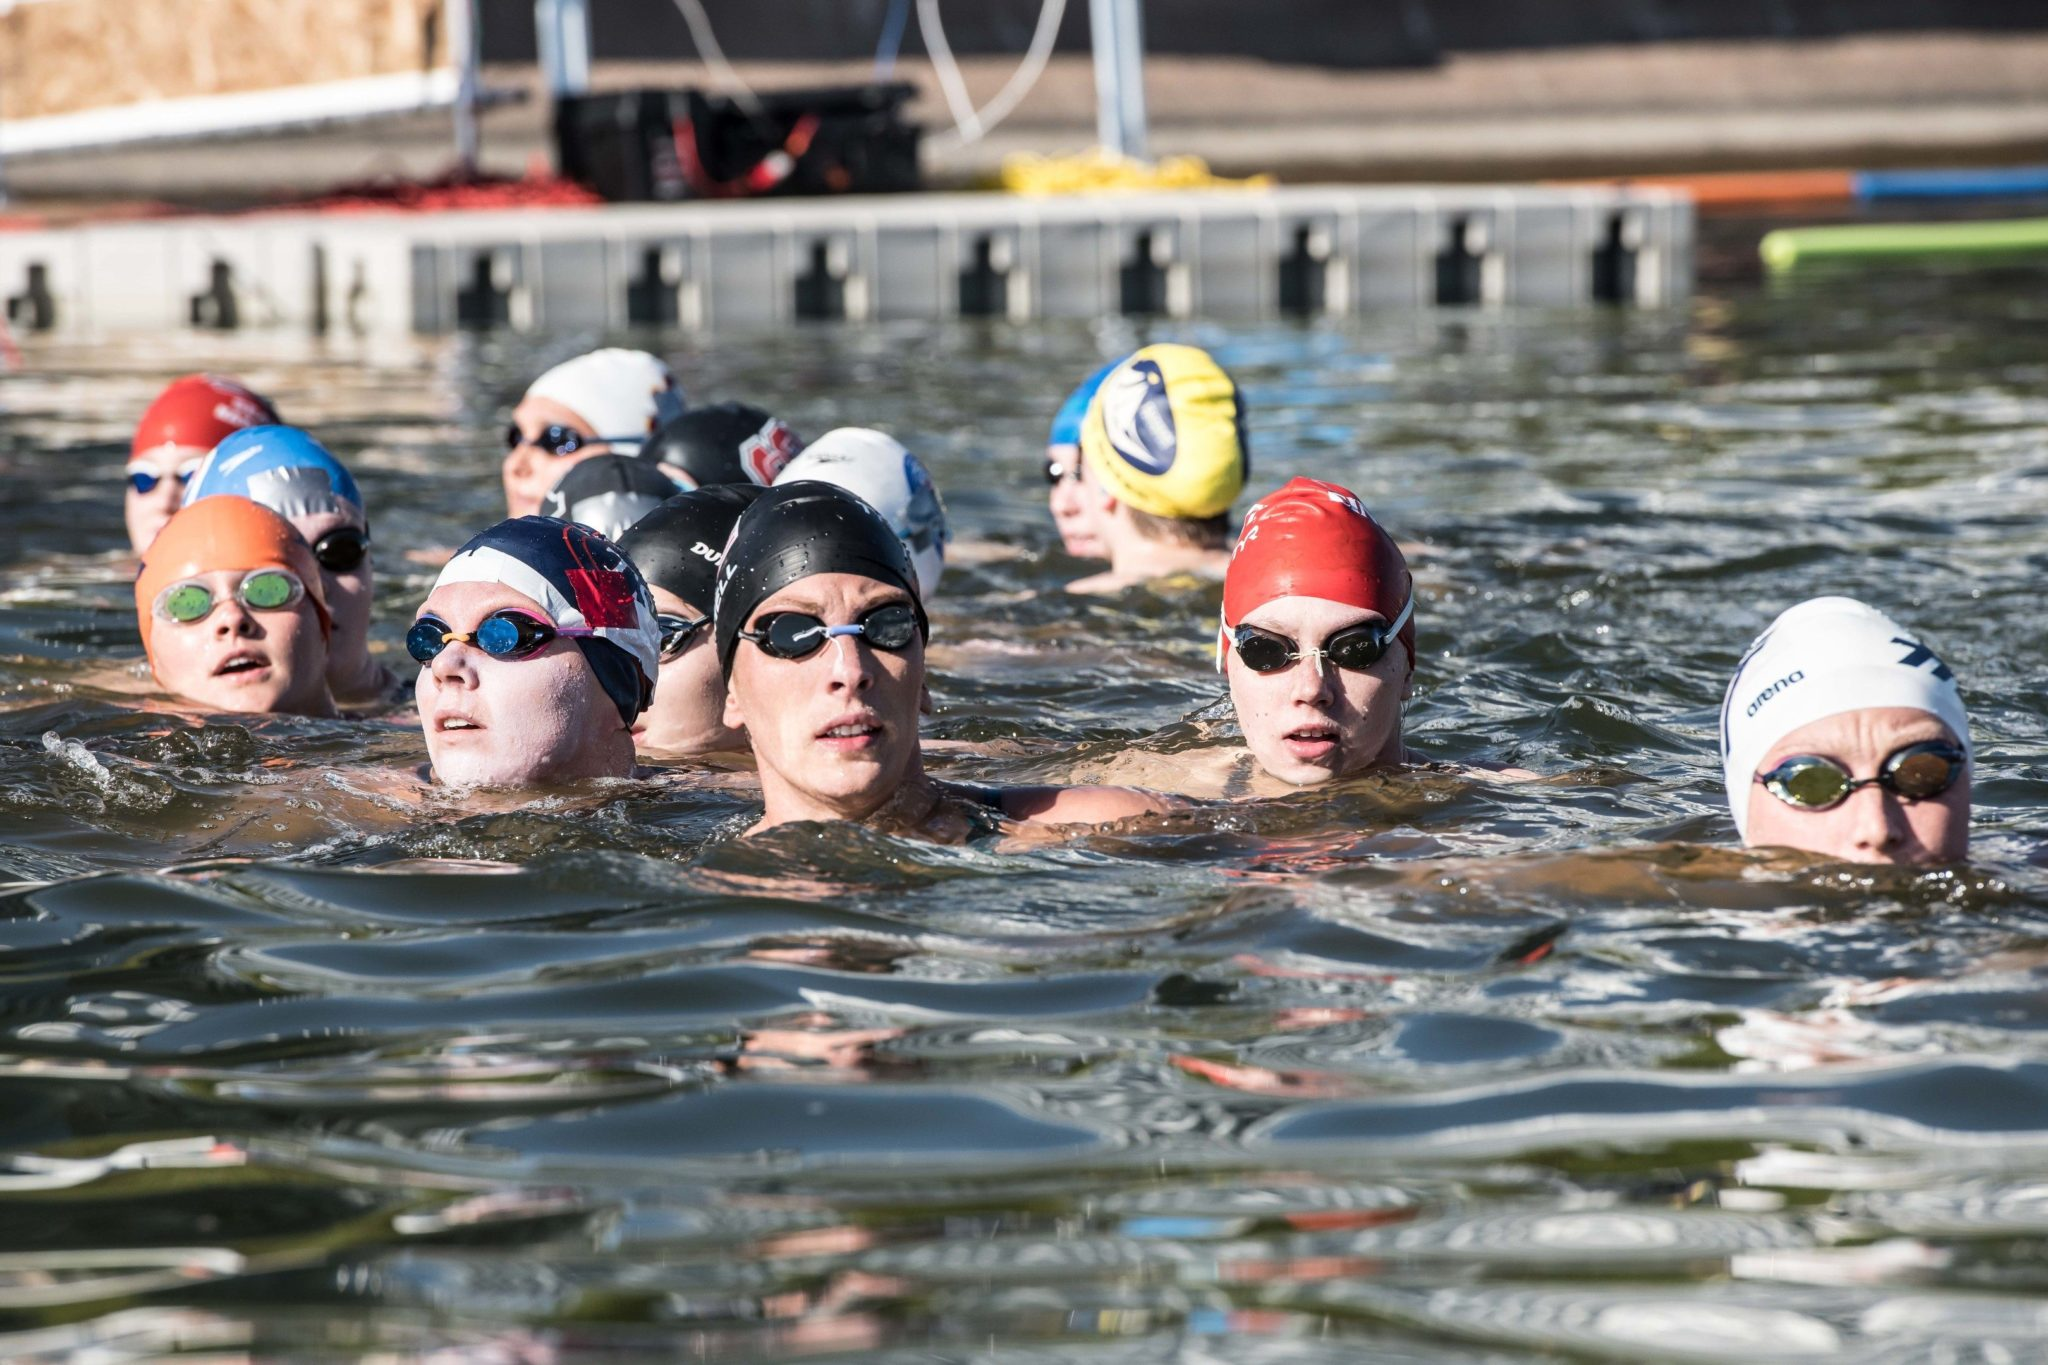 USA Triathlon Announces 3-Way Partnership to Host Open Water